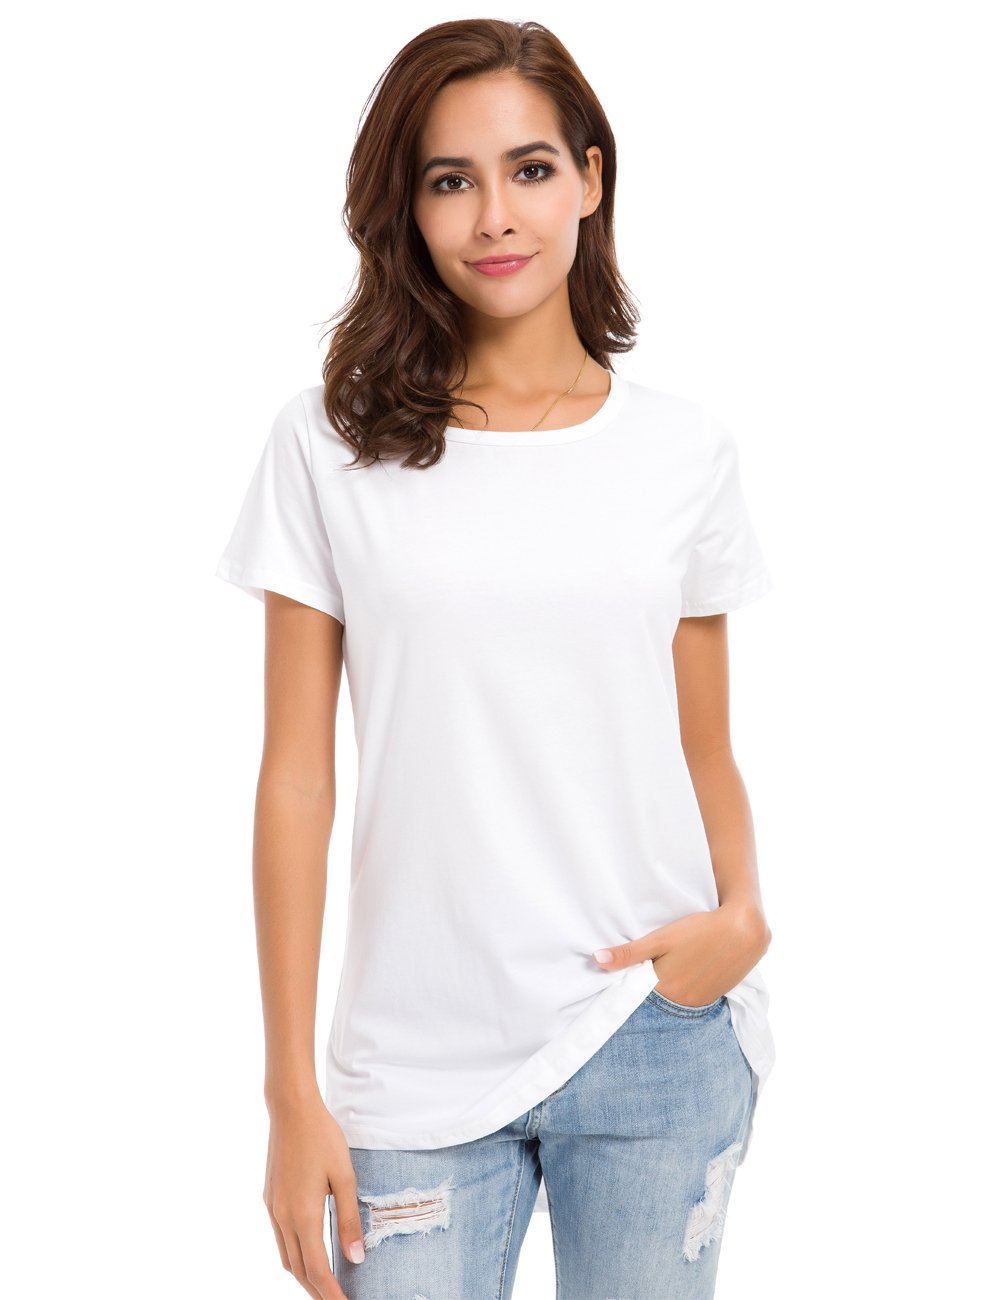 MSHING Women's Short Sleeve Tunic Tops Loose Casual T-Shirt Blouse